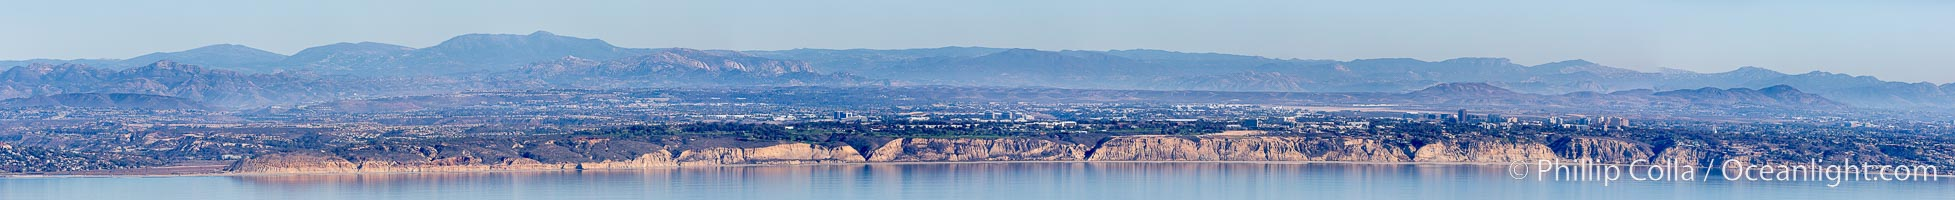 Aerial panorama of Torrey Pines State Reserve, from Del Mar (left) to La Jolla (right), San Diego, California